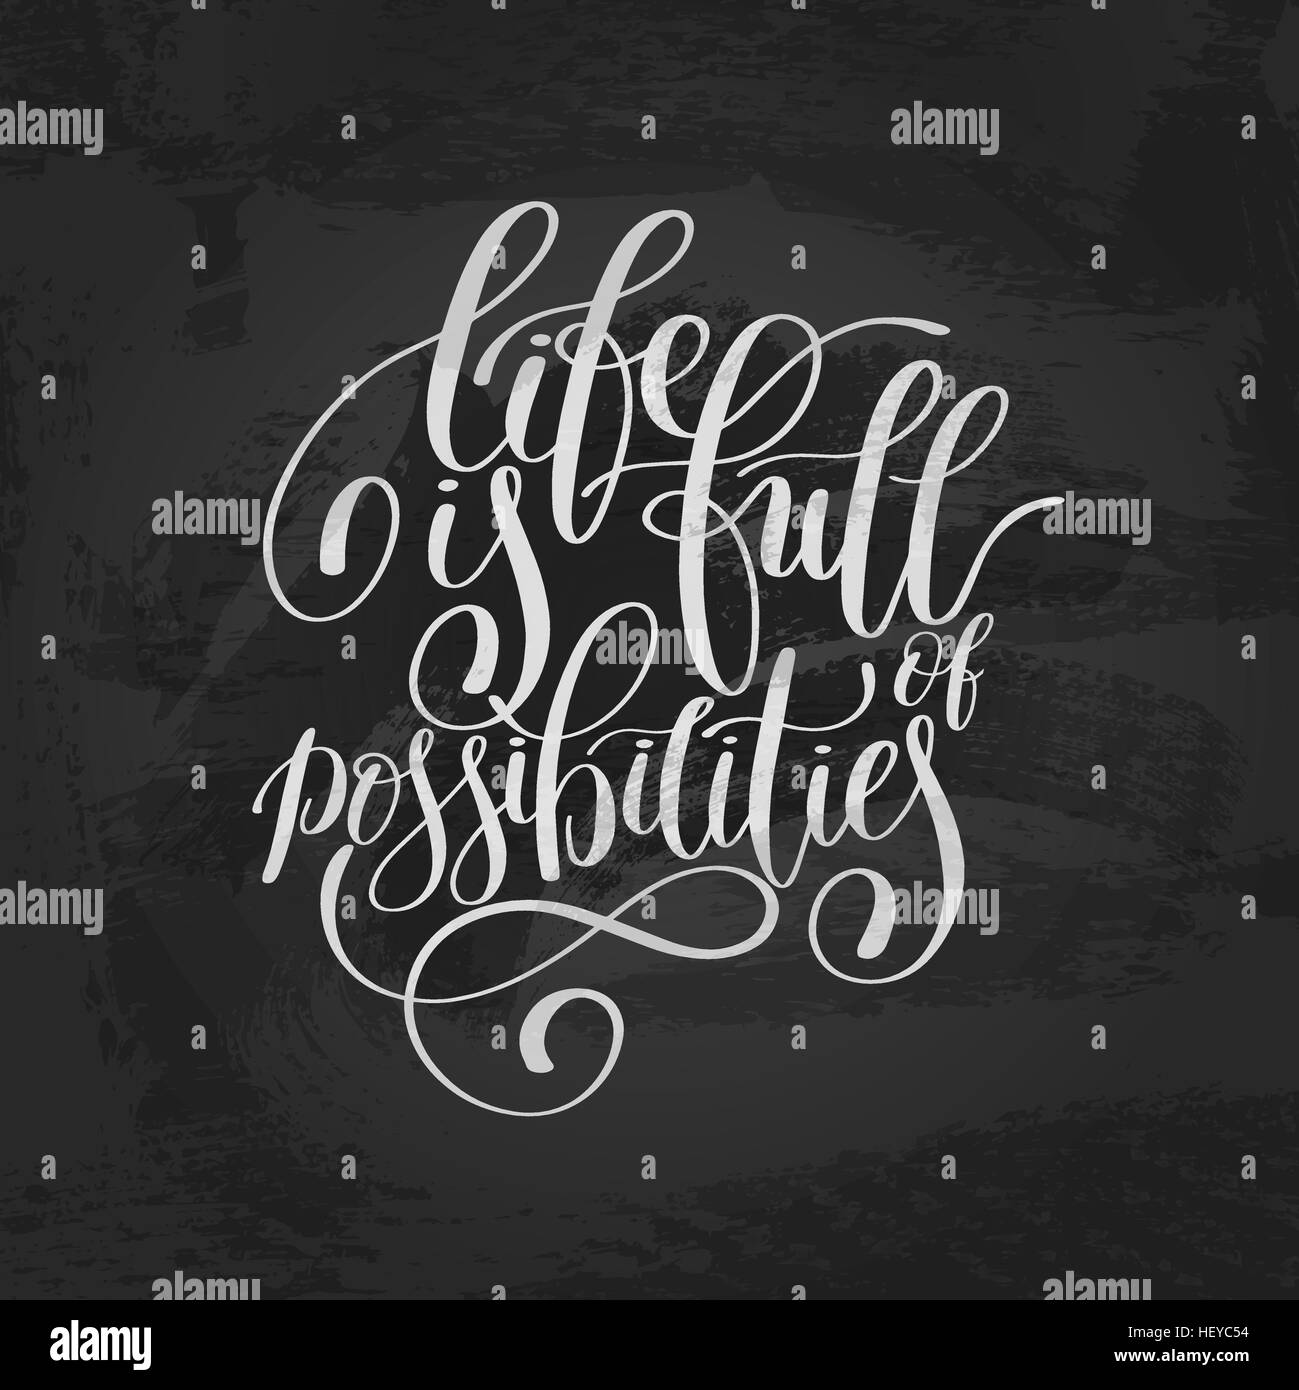 Image of: Love Life Is Full Of Possibilities Inspirational Quote In English Alamy Life Is Full Of Possibilities Inspirational Quote In English Stock